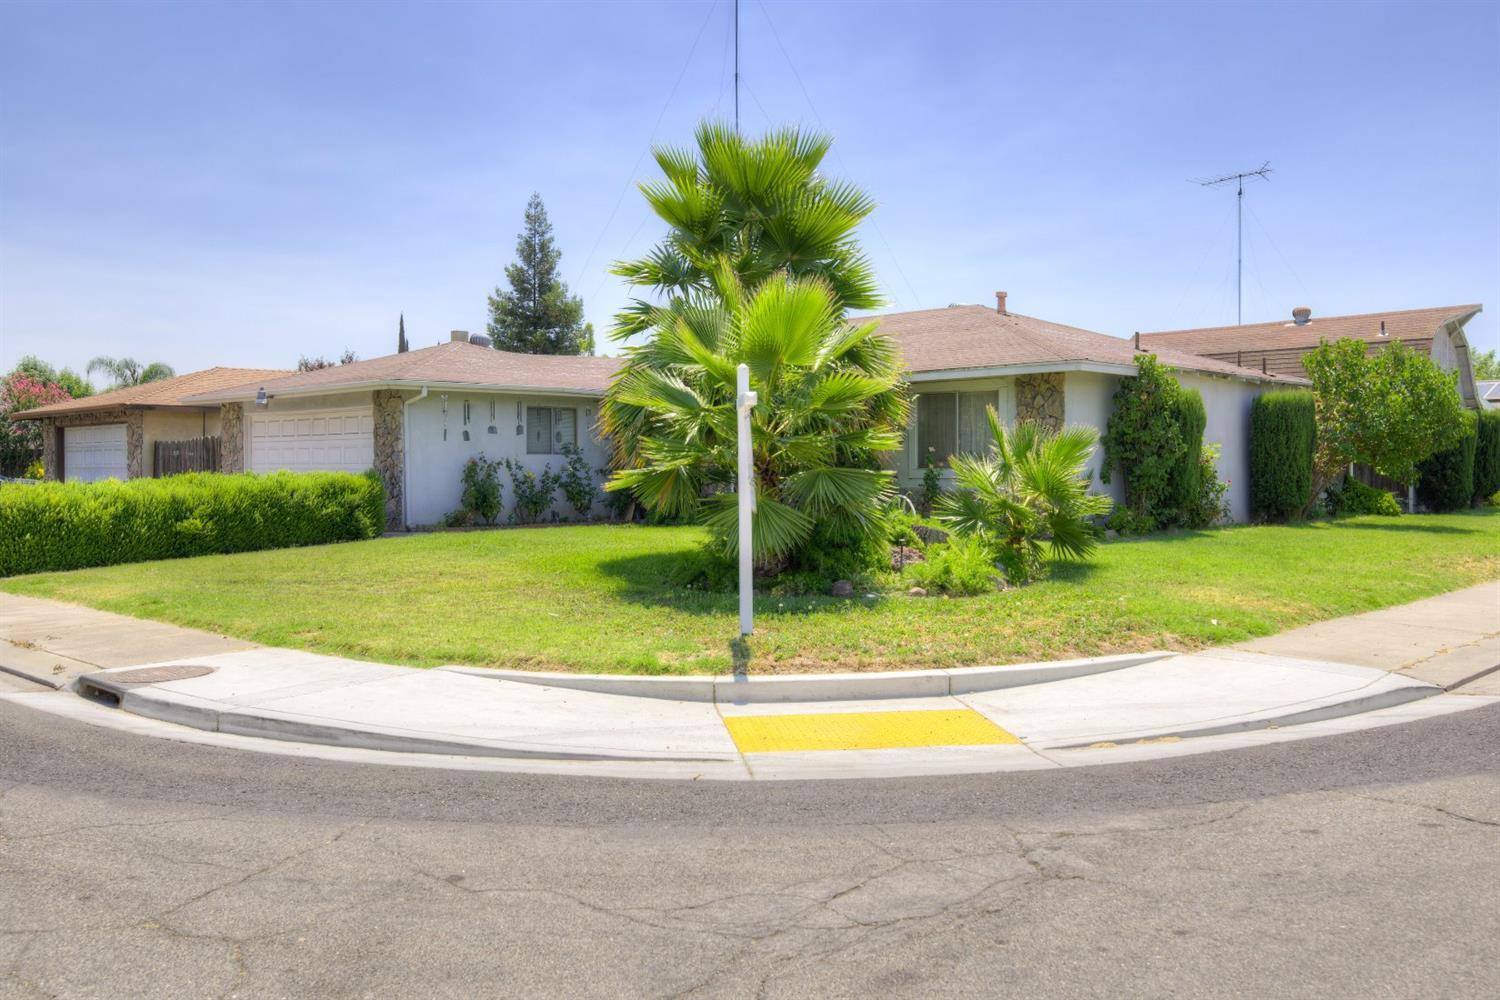 New Homes For Sale In Ceres Ca